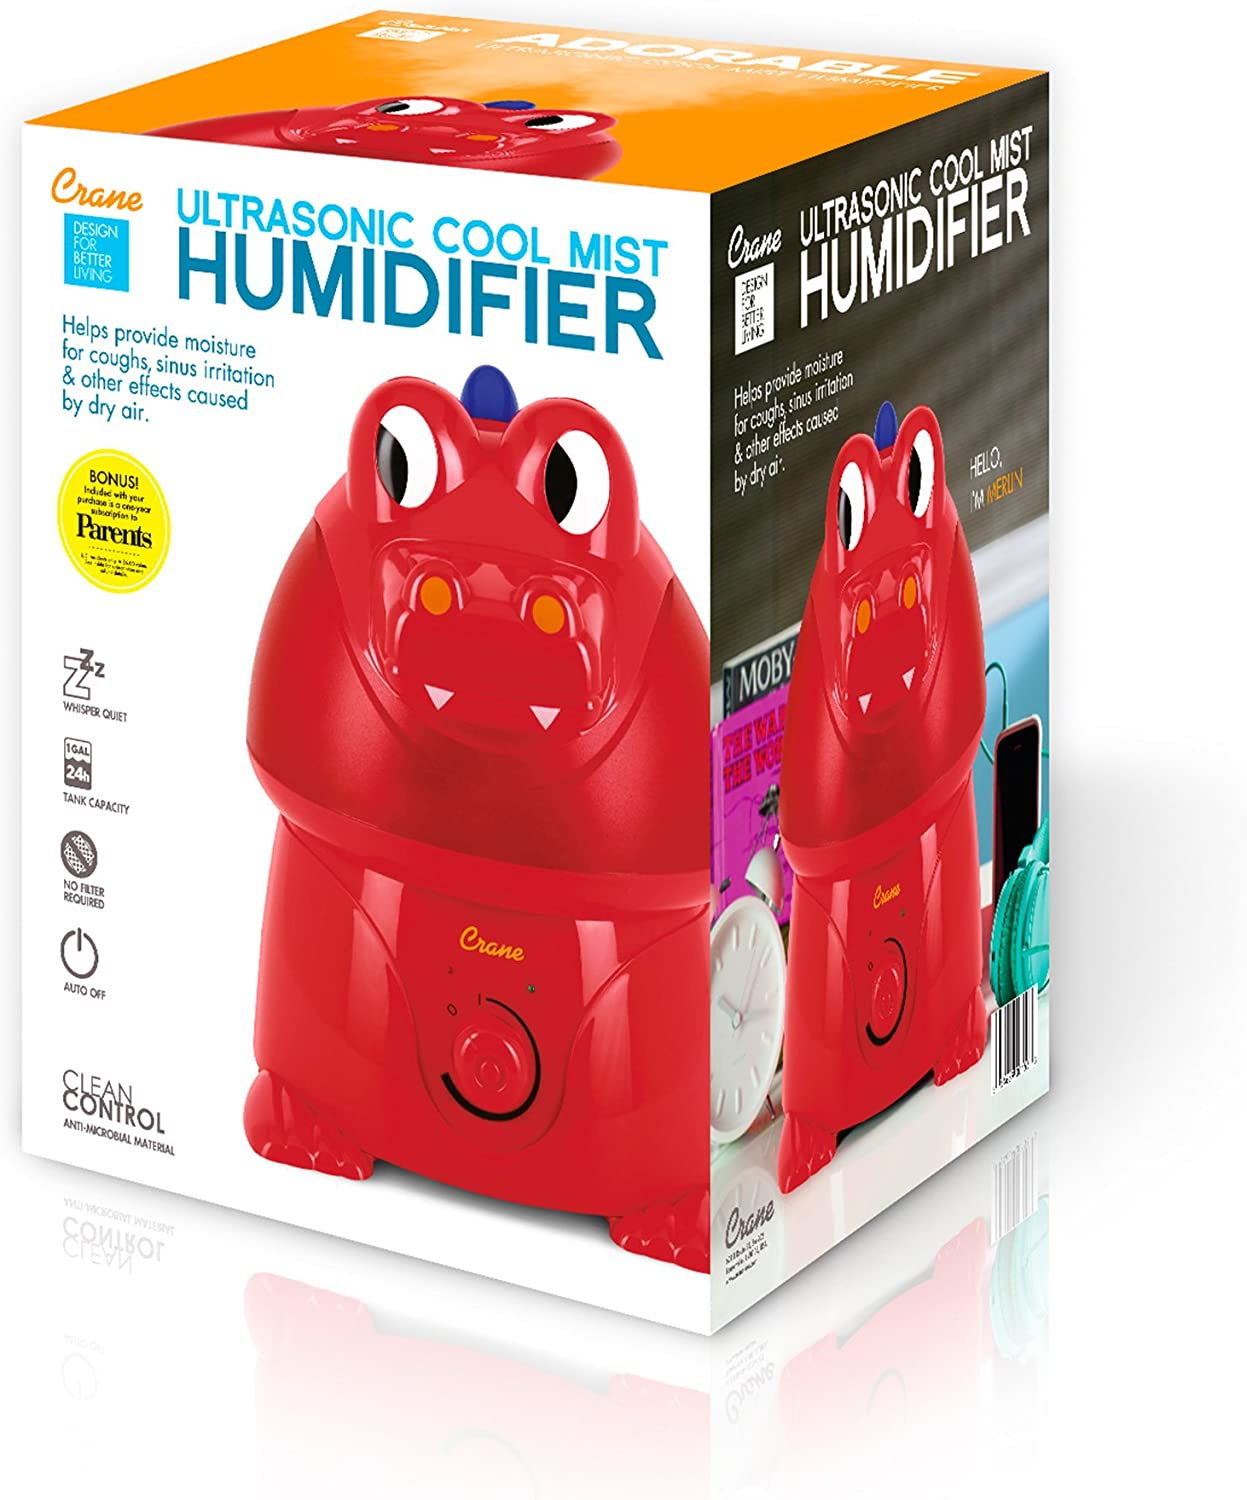 Crane Adorable Ultrasonic Cool Mist Humidifier with 2.1 Gallon Output per Day Dragon